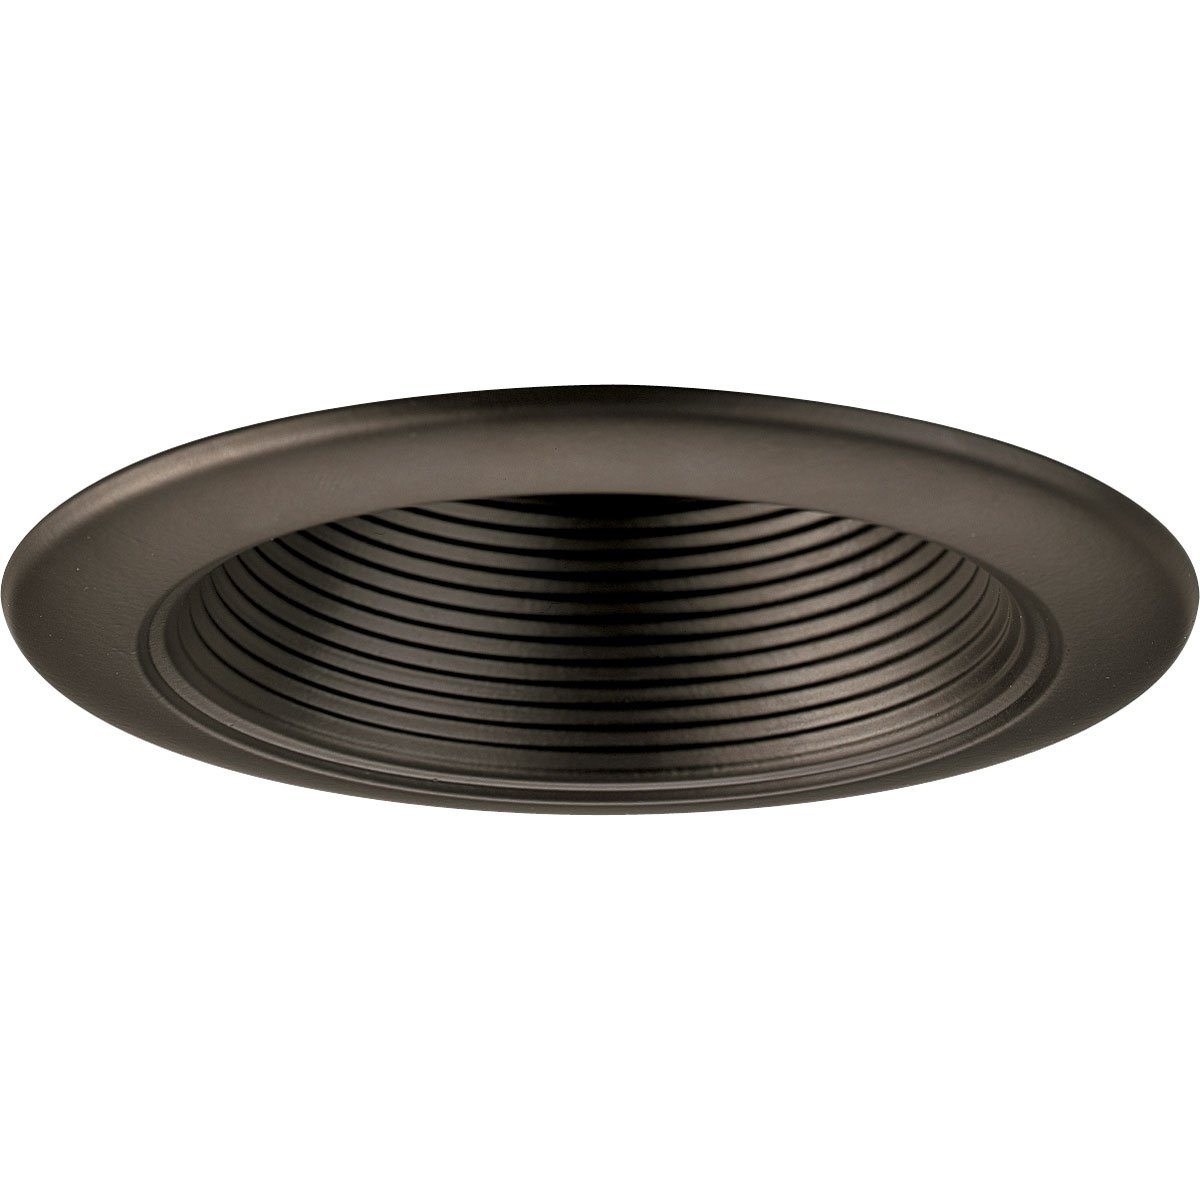 Amazon progress lighting p8044 20 4 inch incandescent step amazon progress lighting p8044 20 4 inch incandescent step baffle recessed light trim finish antique bronze home improvement aloadofball Gallery